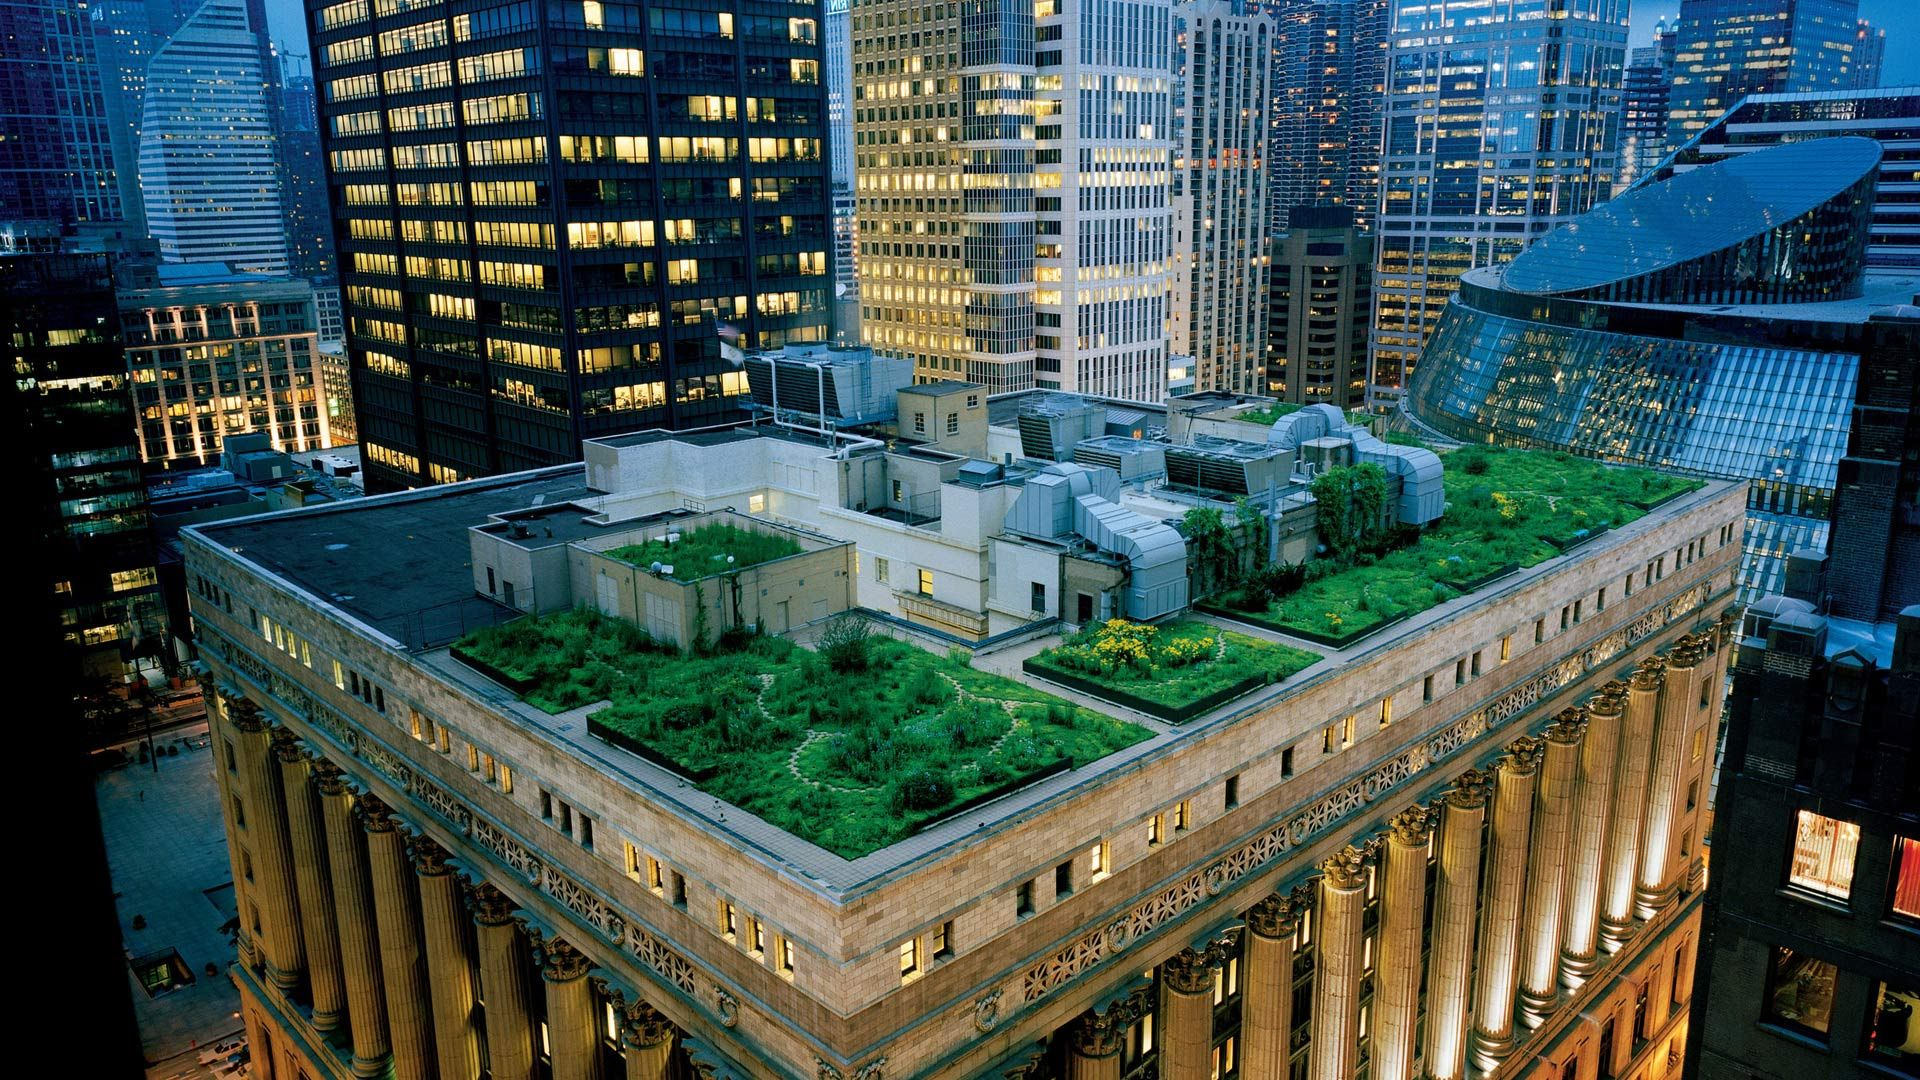 Roof Garden Rooftop Garden Places In Chicago Chicago City